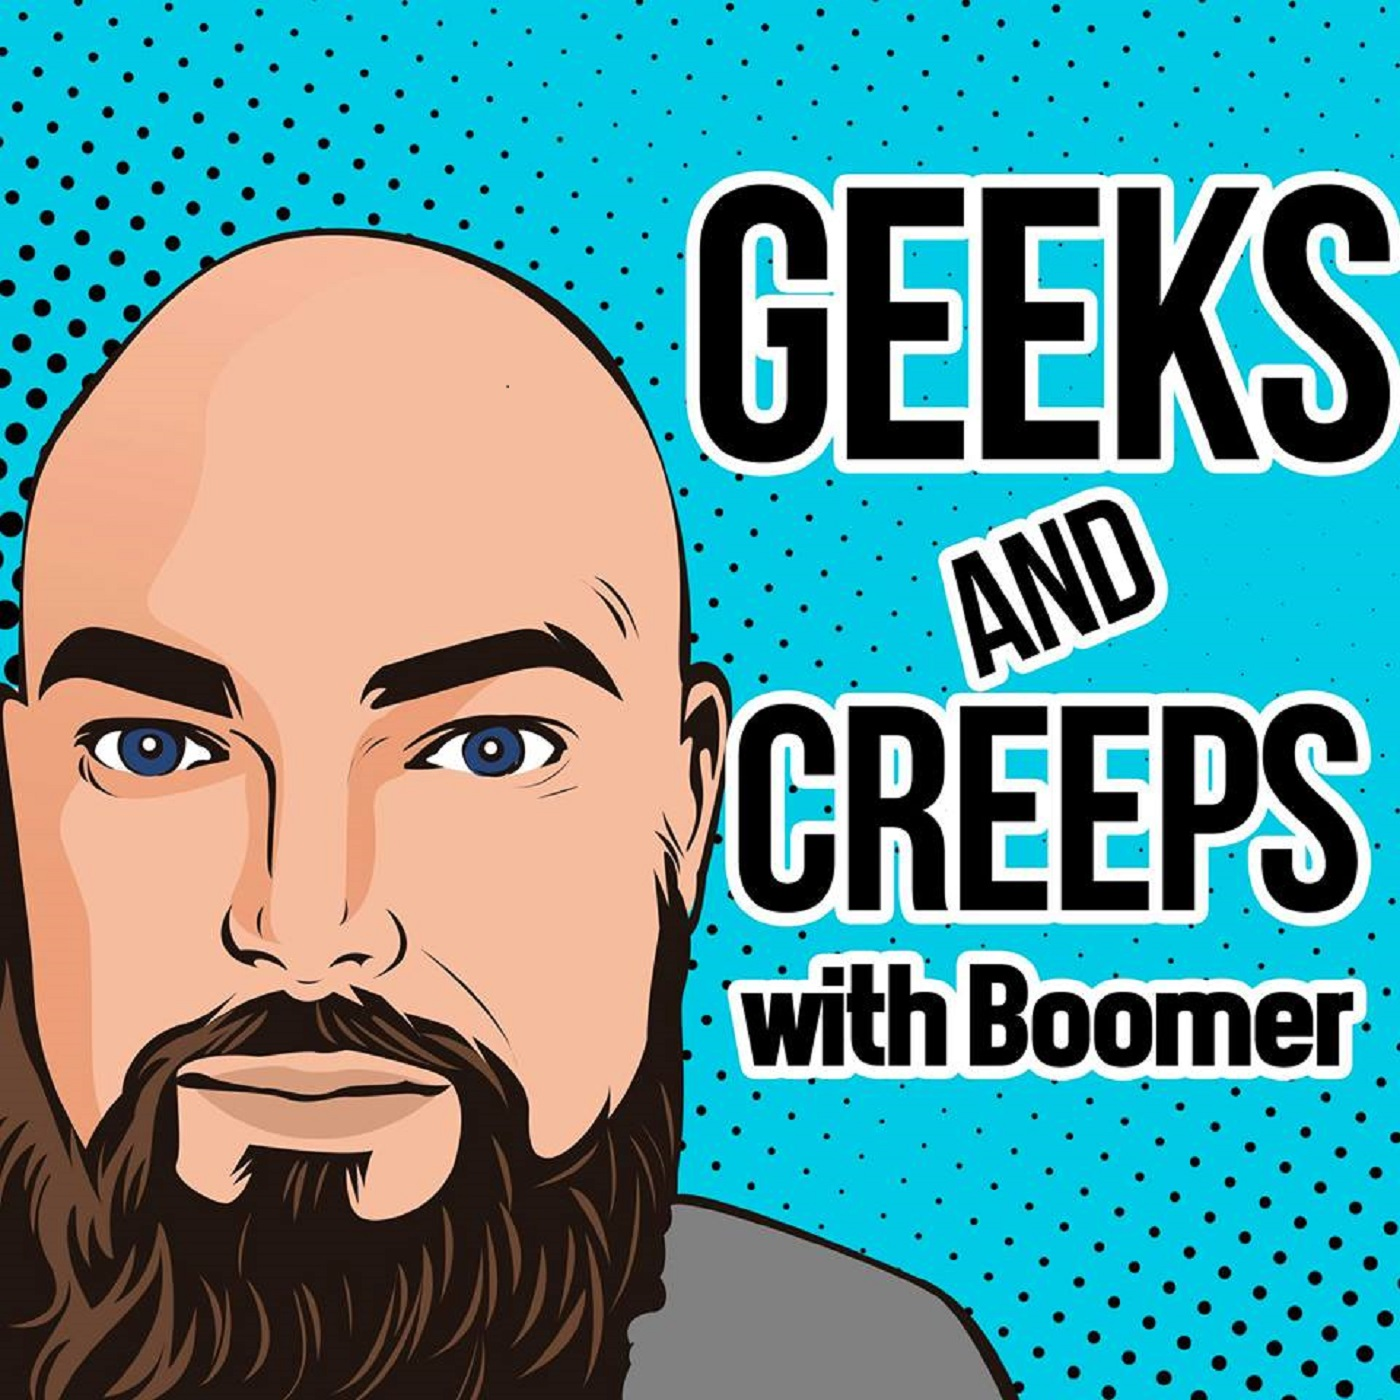 Geeks and Creeps Episode 3 show art